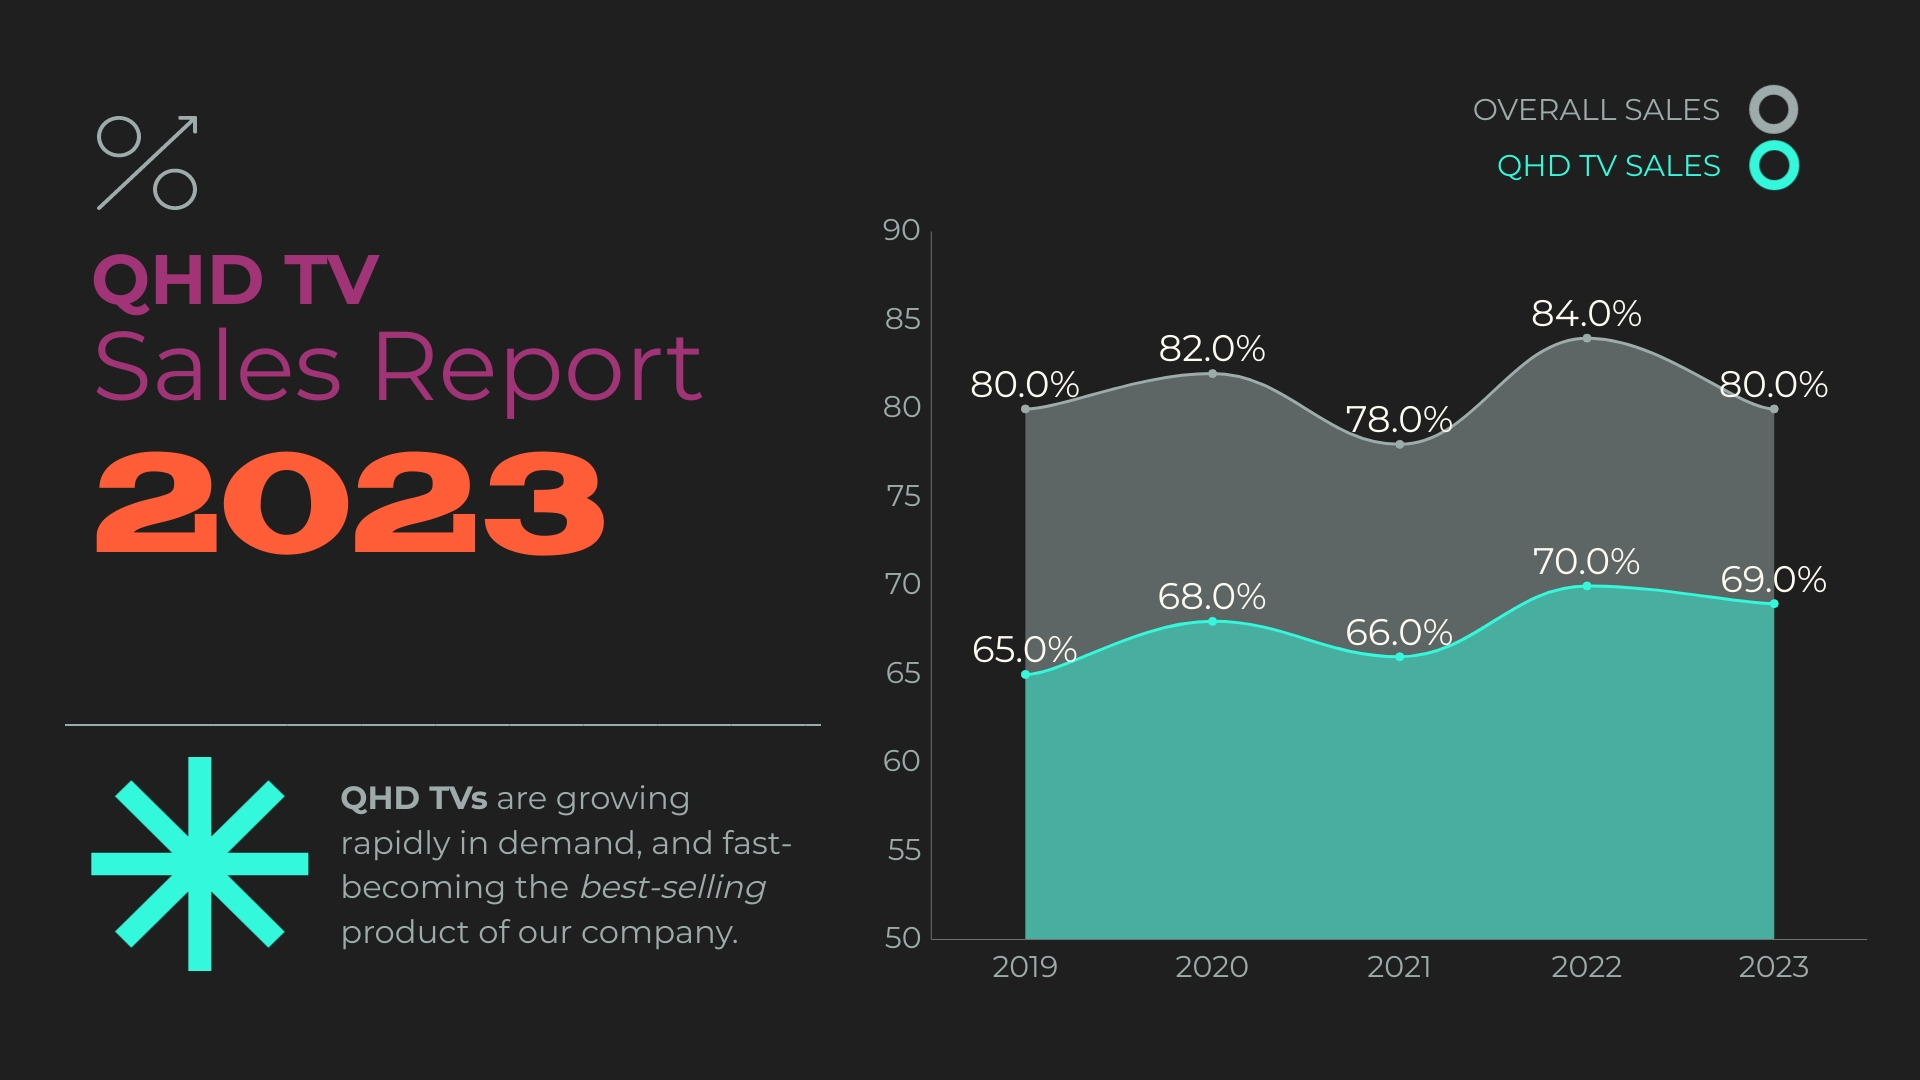 QHD TV Sales Report 2023 - Area Chart Template